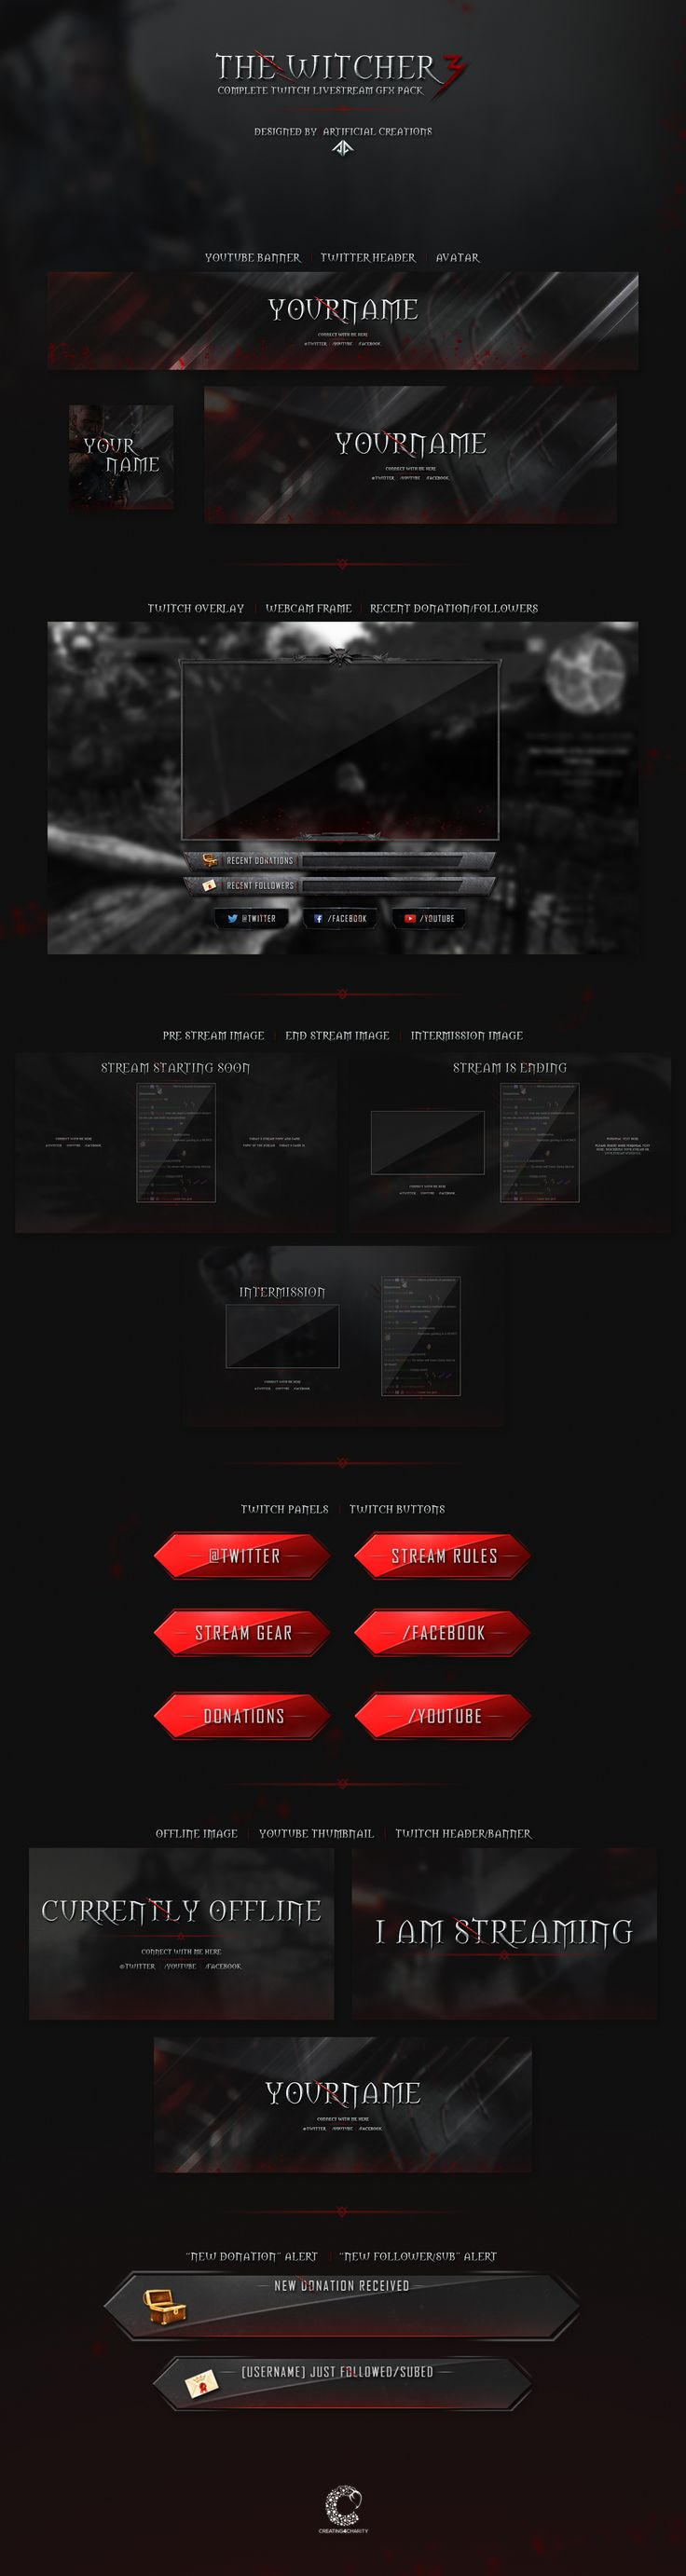 The Witcher 3 Livestream Pack on Behance